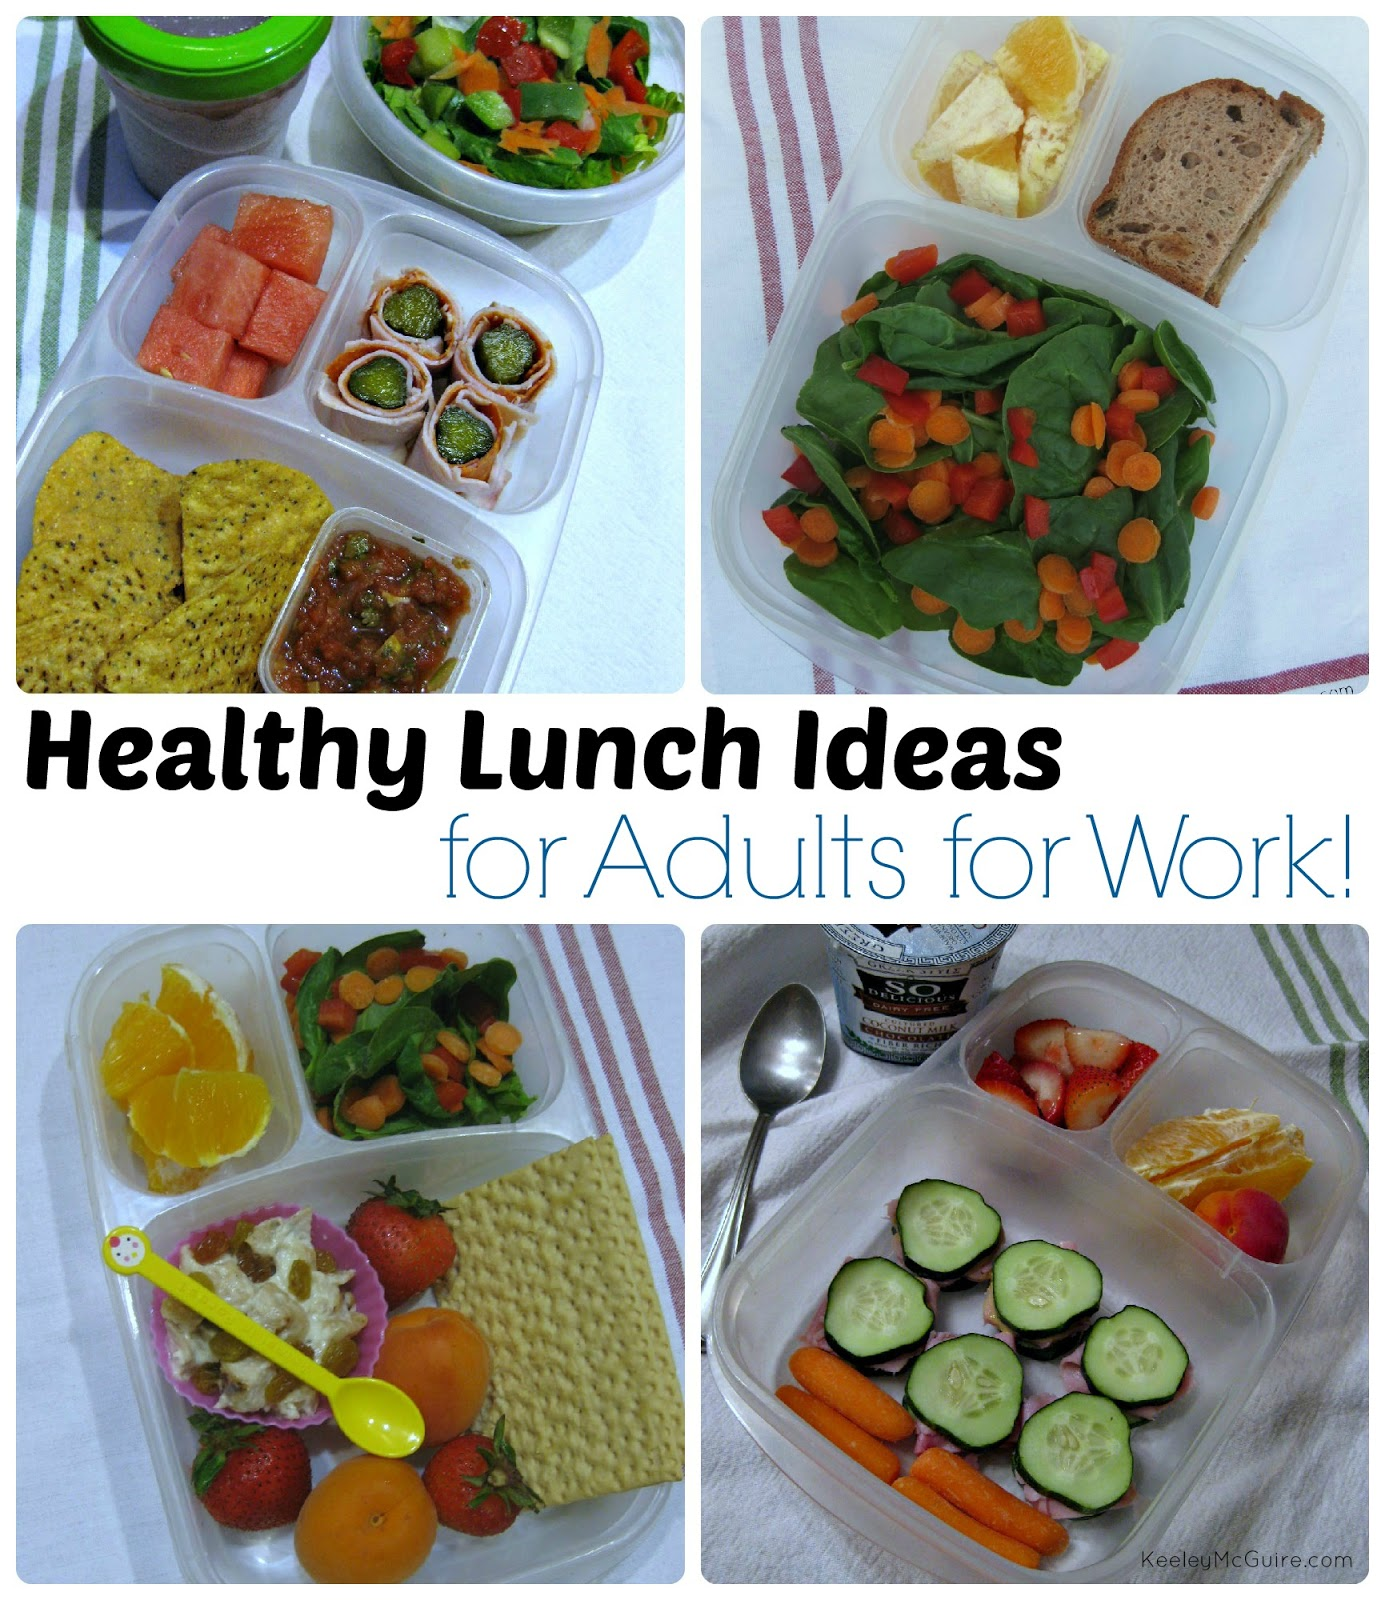 Gluten Free Allergy Friendly Lunch Made Easy Healthy Adult Work Lunches